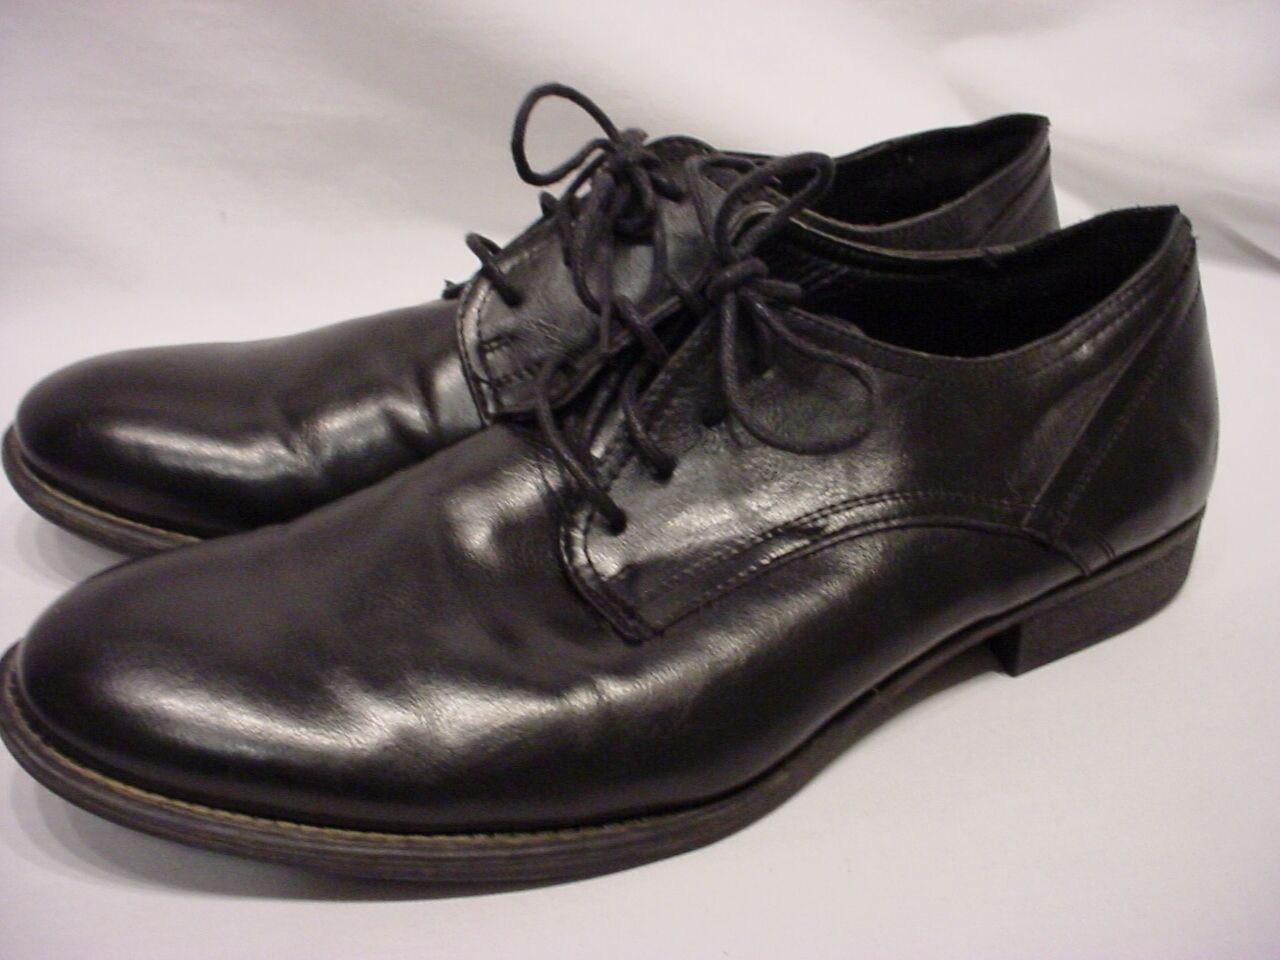 MENS GUESS BLACK LEATHER DRESS OXFORDS MGNOLO SZ 10.5 M STYLE MGNOLO OXFORDS 97c2e1